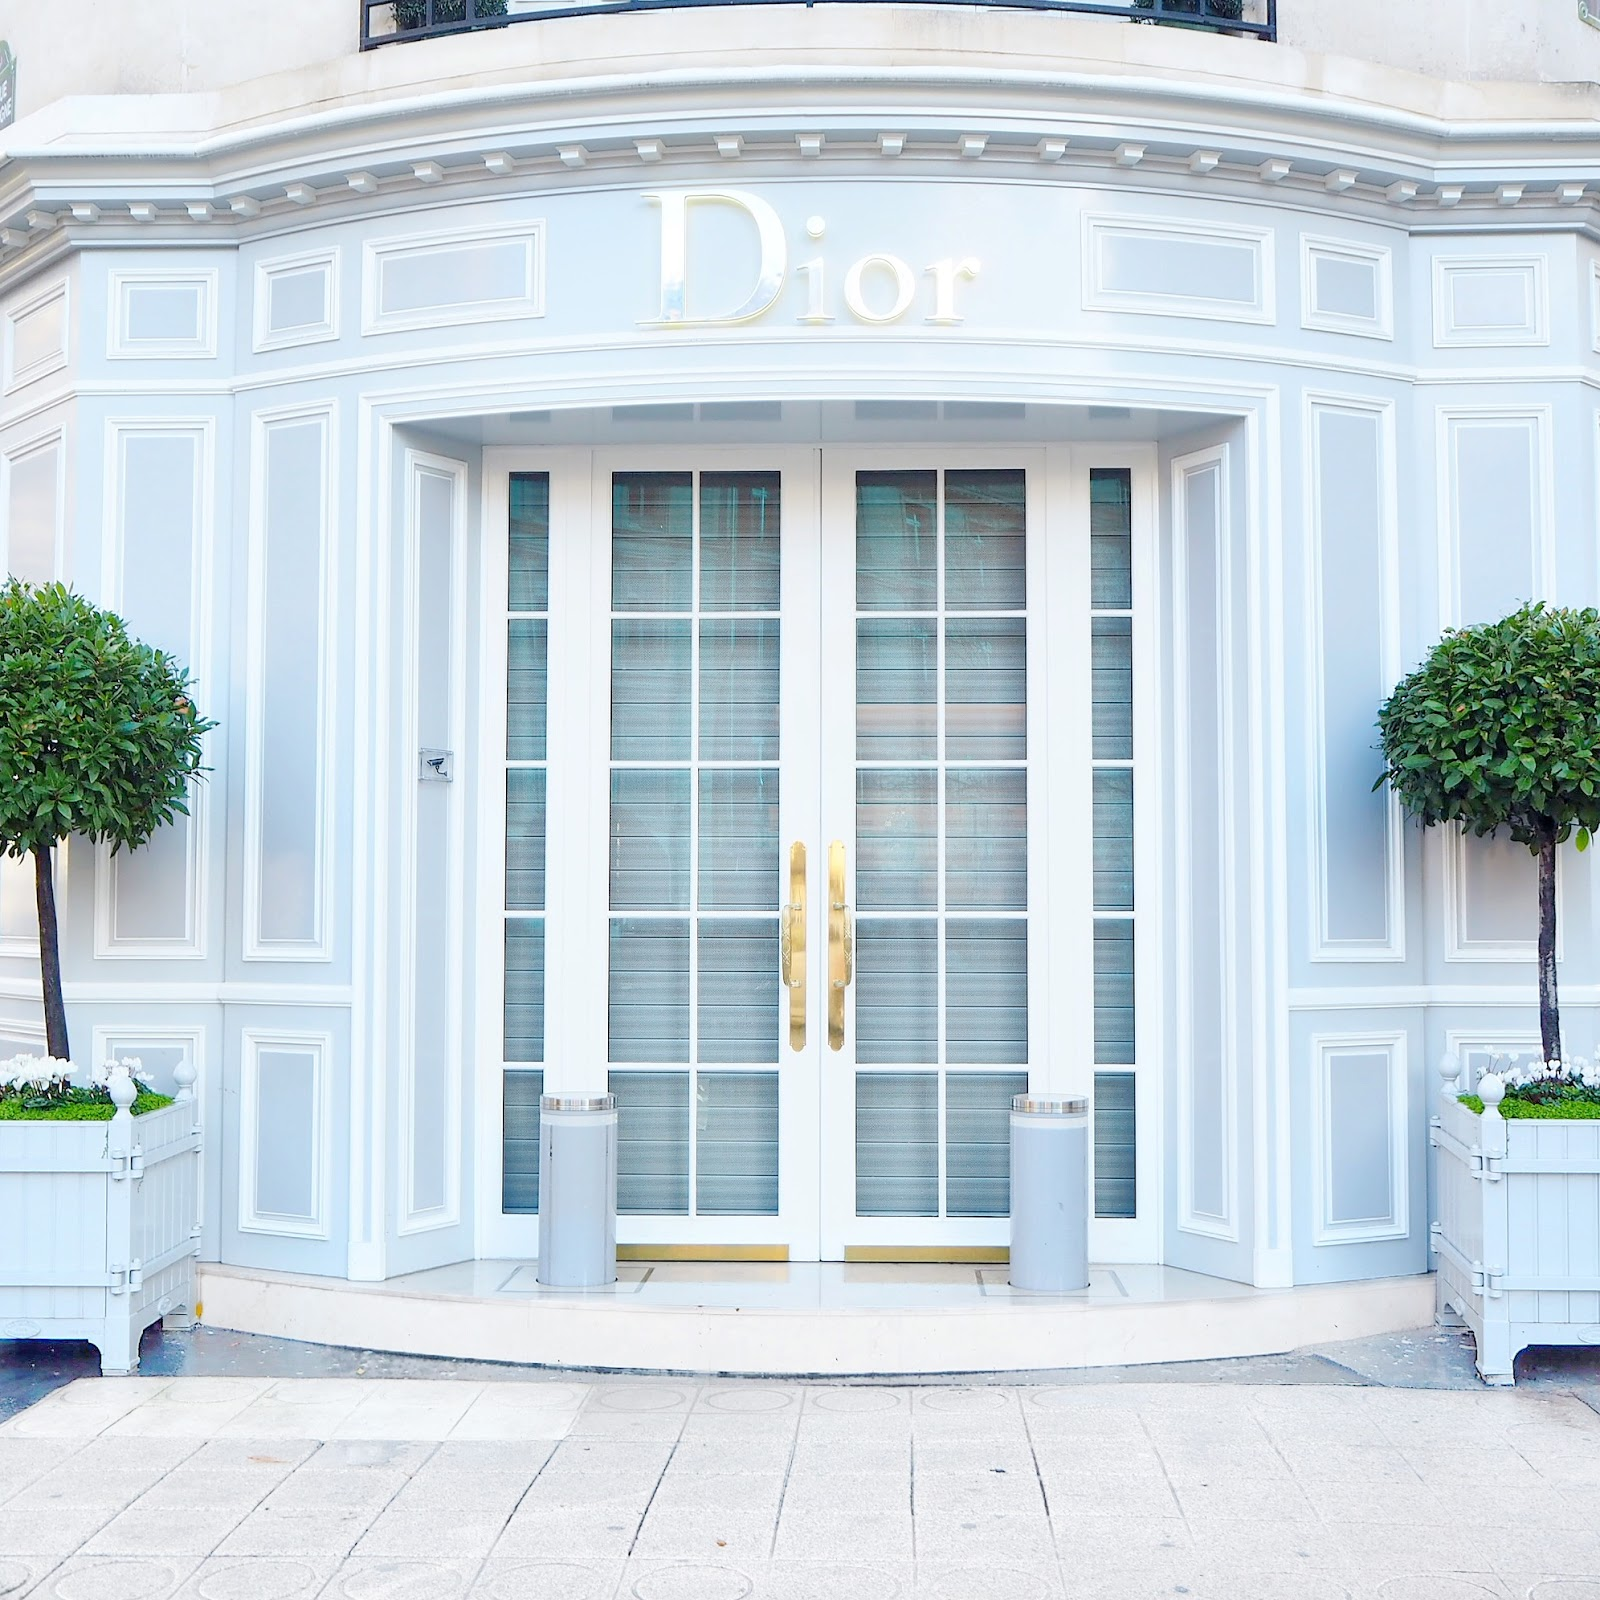 Baby Blue Dior Boutique in Paris | Love, Catherine